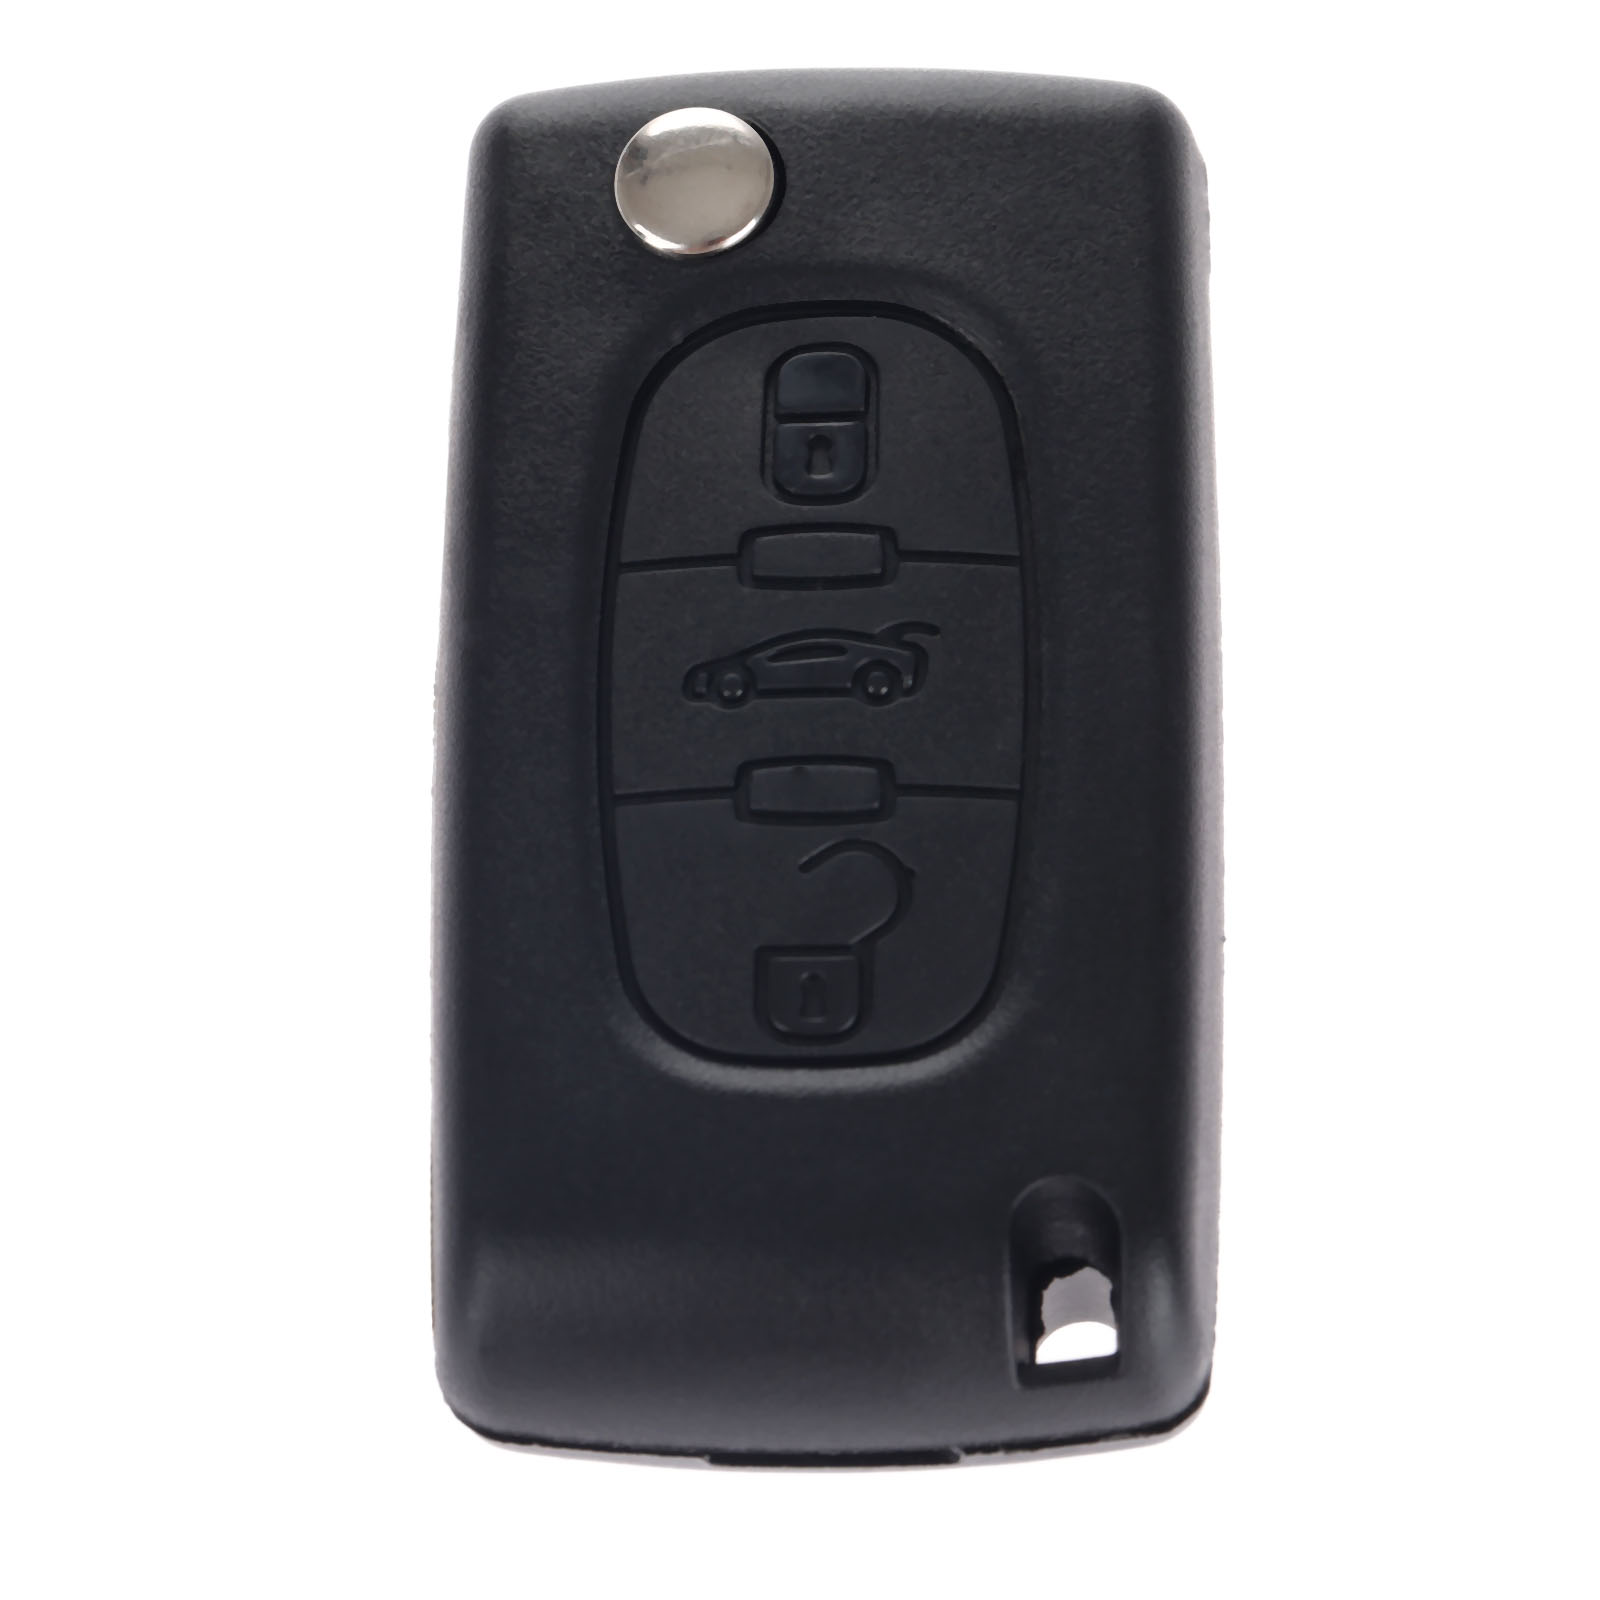 Image 4 - 3 Buttons Auto Flip Folding Remote Entry Key Fob Case Cover Blank Blade For Citroen C4 Picasso C5 C6 Replacement Car Key Shell-in Car Key from Automobiles & Motorcycles